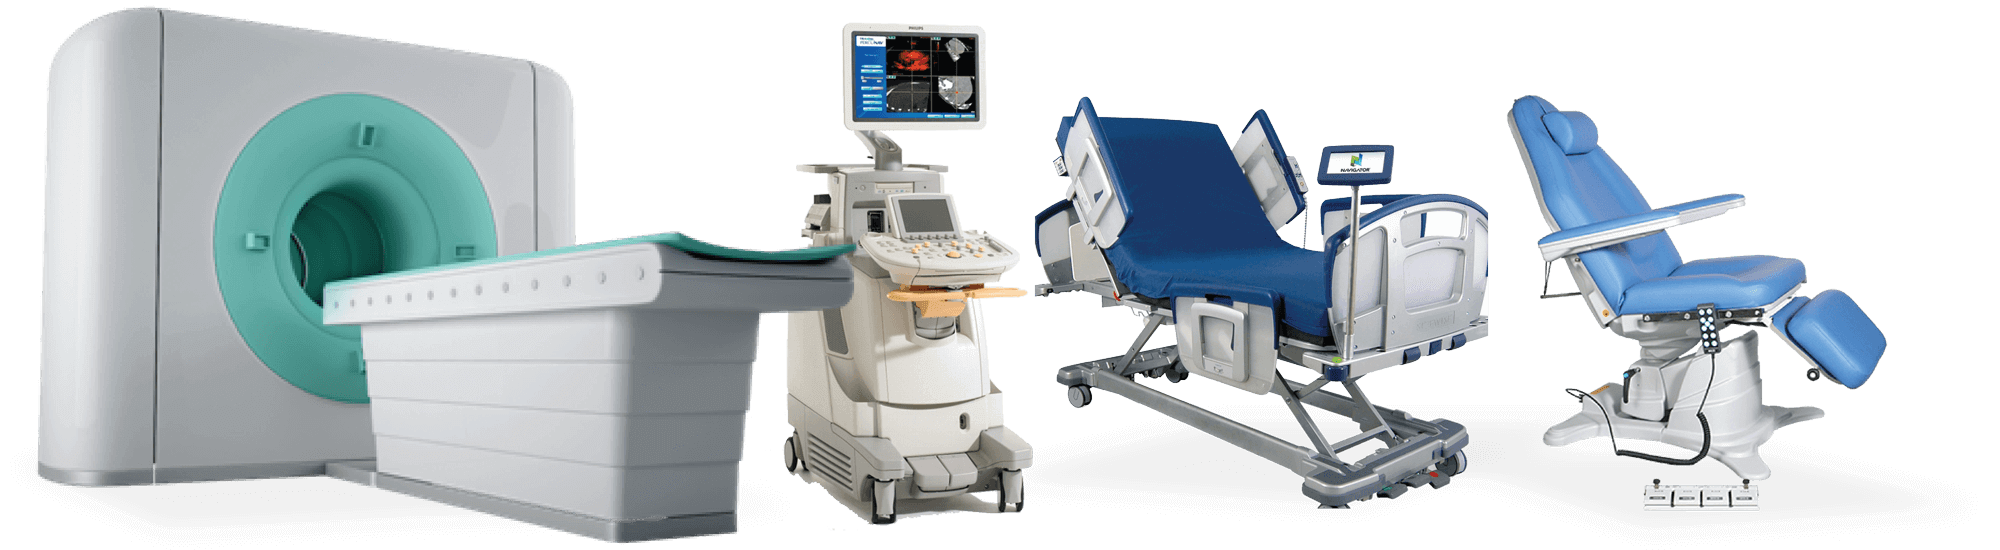 The Medical Equipment In Hospitals